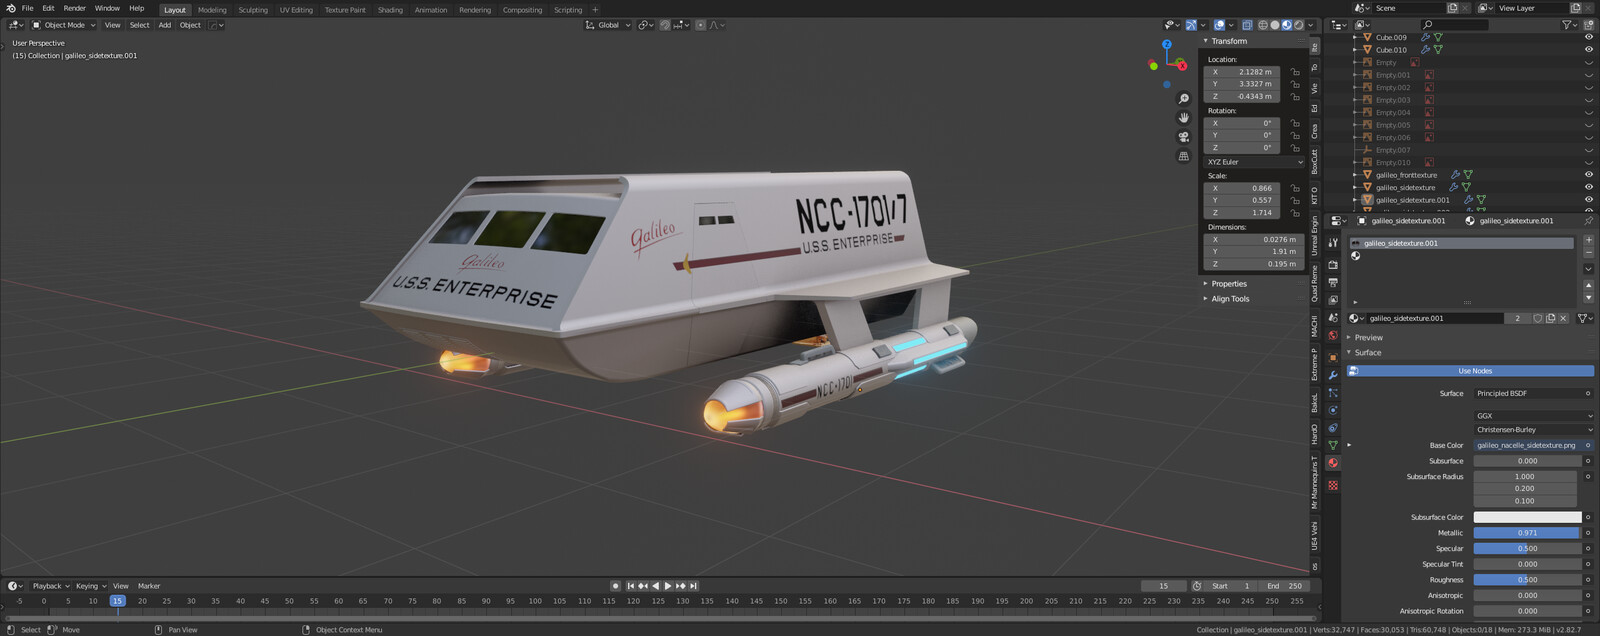 TOS Shuttle WIP